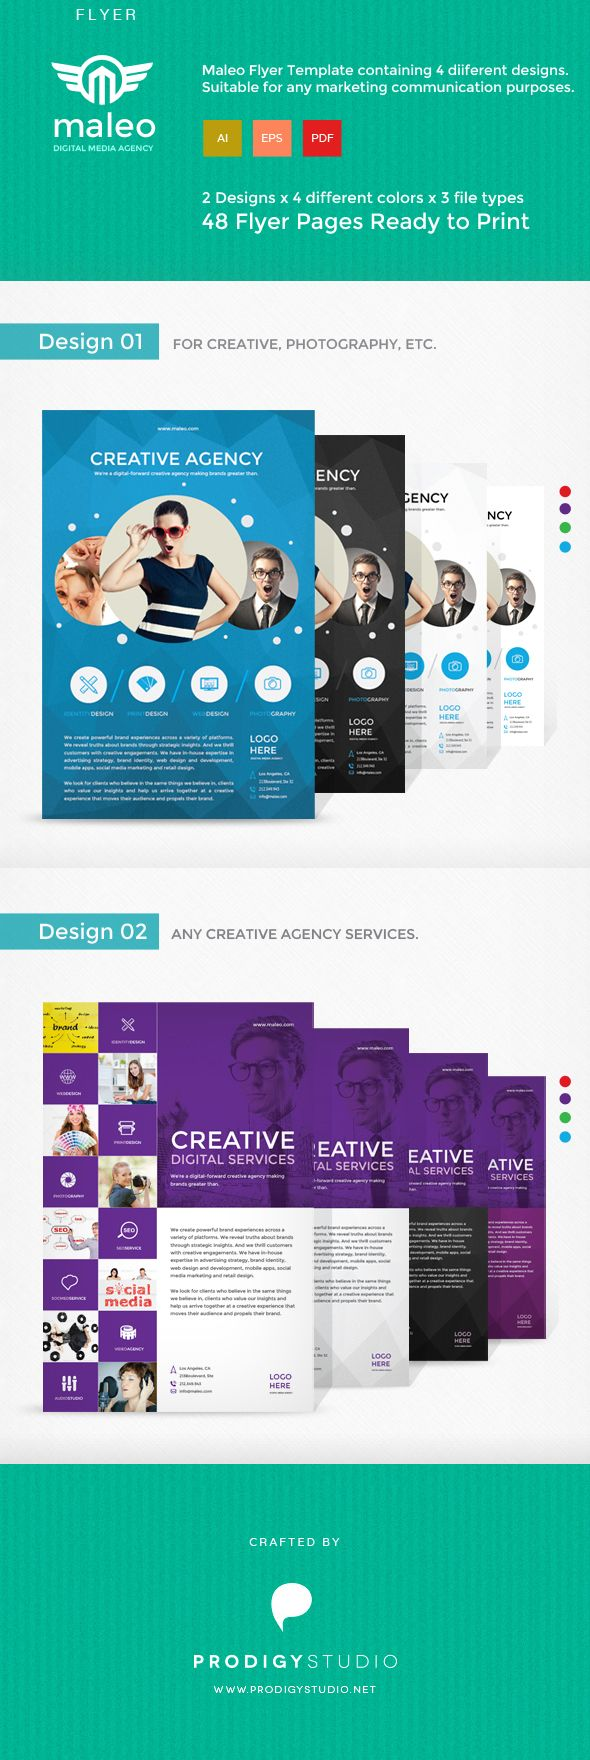 Maleo is unique and creative flyer with flexible features give you choices for any kind communication needs.  Download here: http://graphicriver.net/item/maleo-flyer-template/7571223?ref=prodigystudio